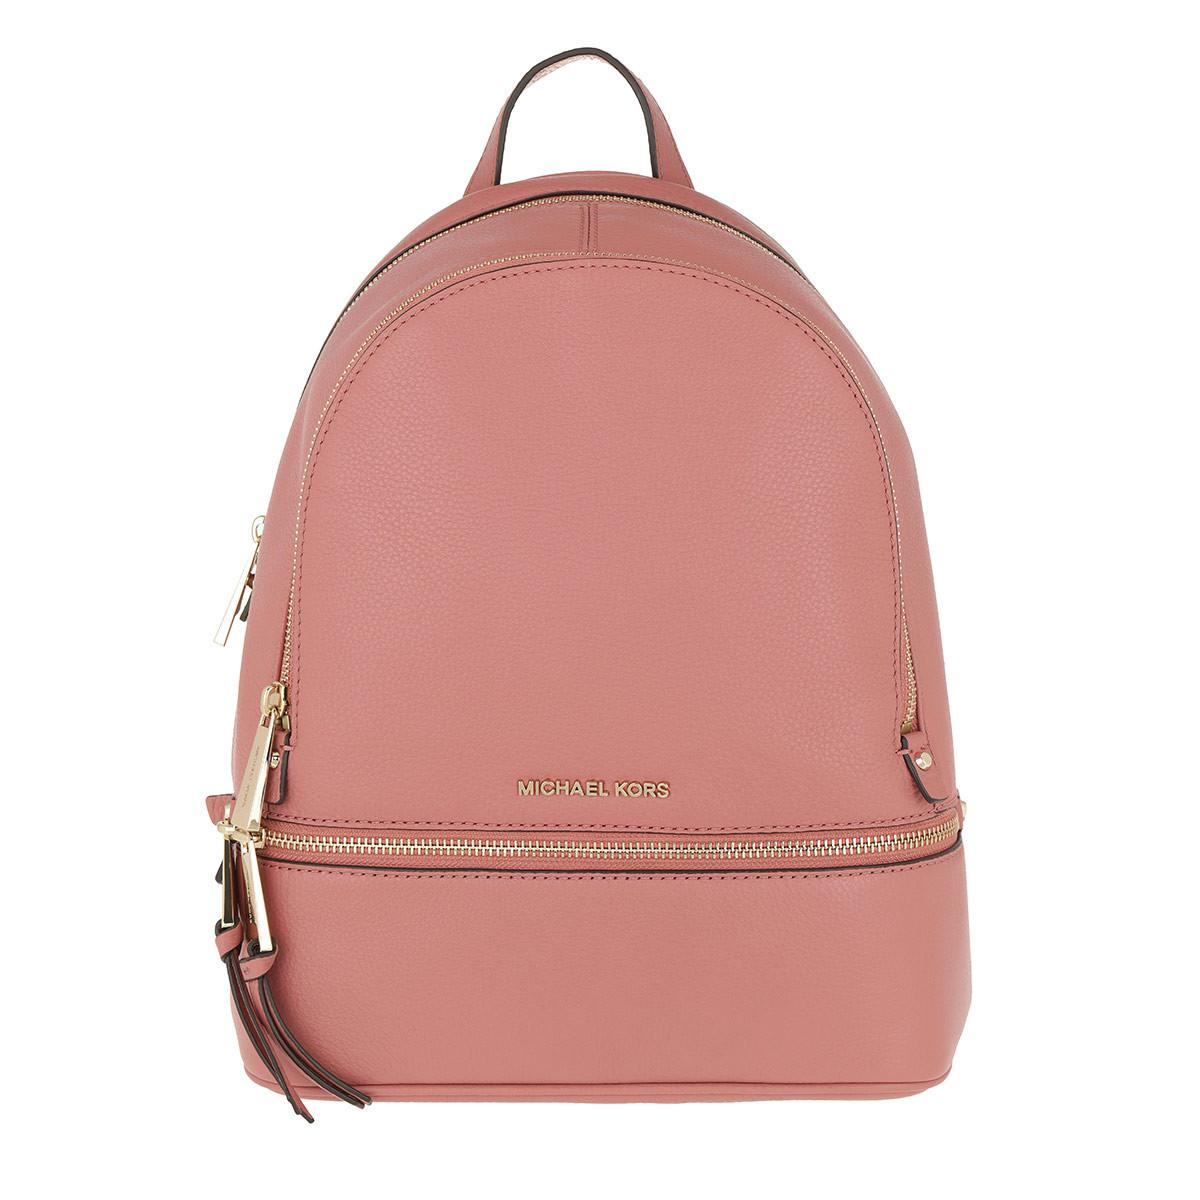 Michael Kors - Pink Rhea Zip Md Backpack Rose - Lyst. View fullscreen 04e3f6db6d